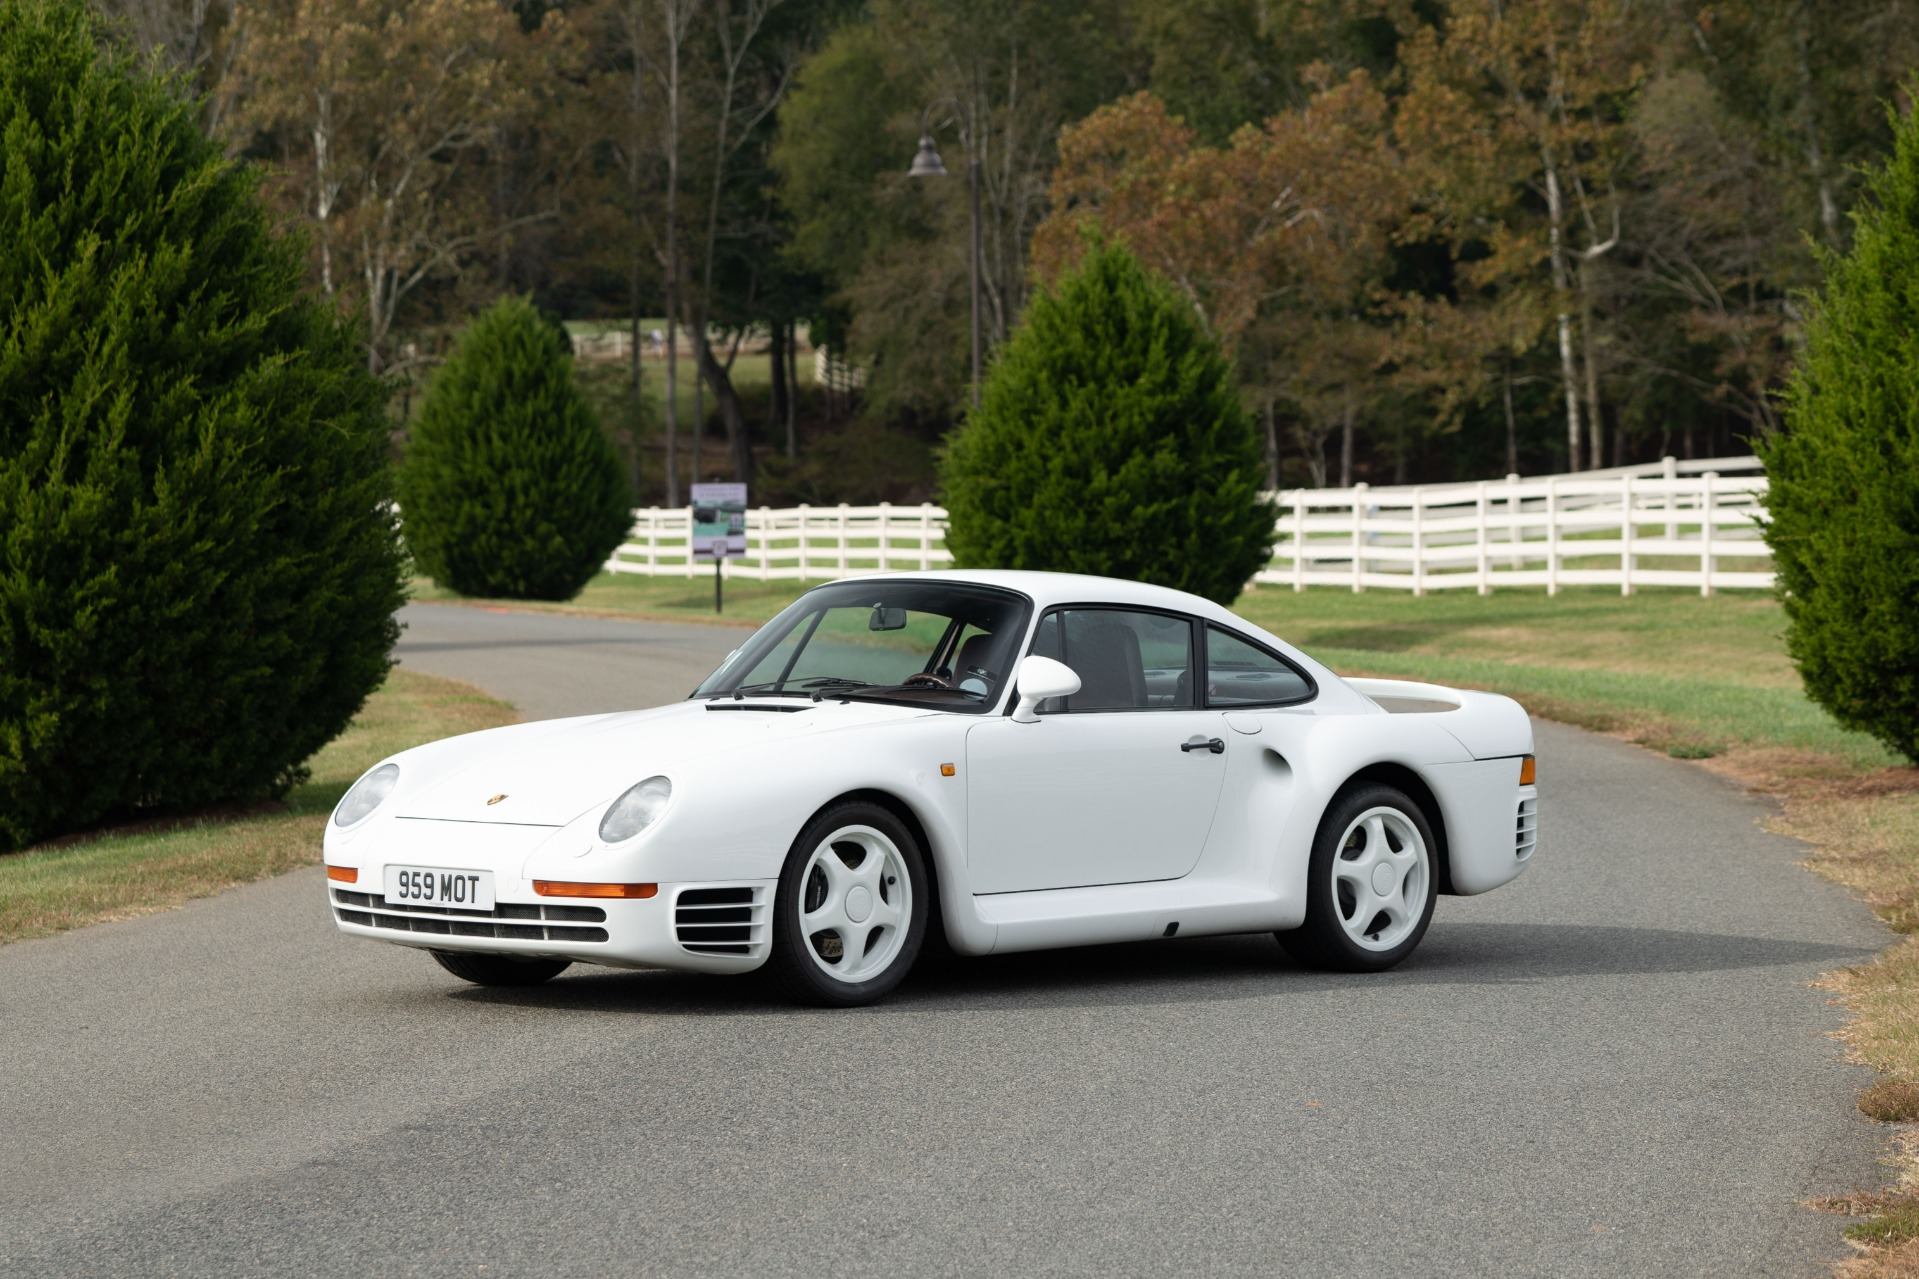 Used 1988 Porsche 959 KOMFORT COUPE / AWD / 6-SPEED MANUAL / ORIGINAL SUPERCAR for sale $1,399,999 at Formula Imports in Charlotte NC 28227 25